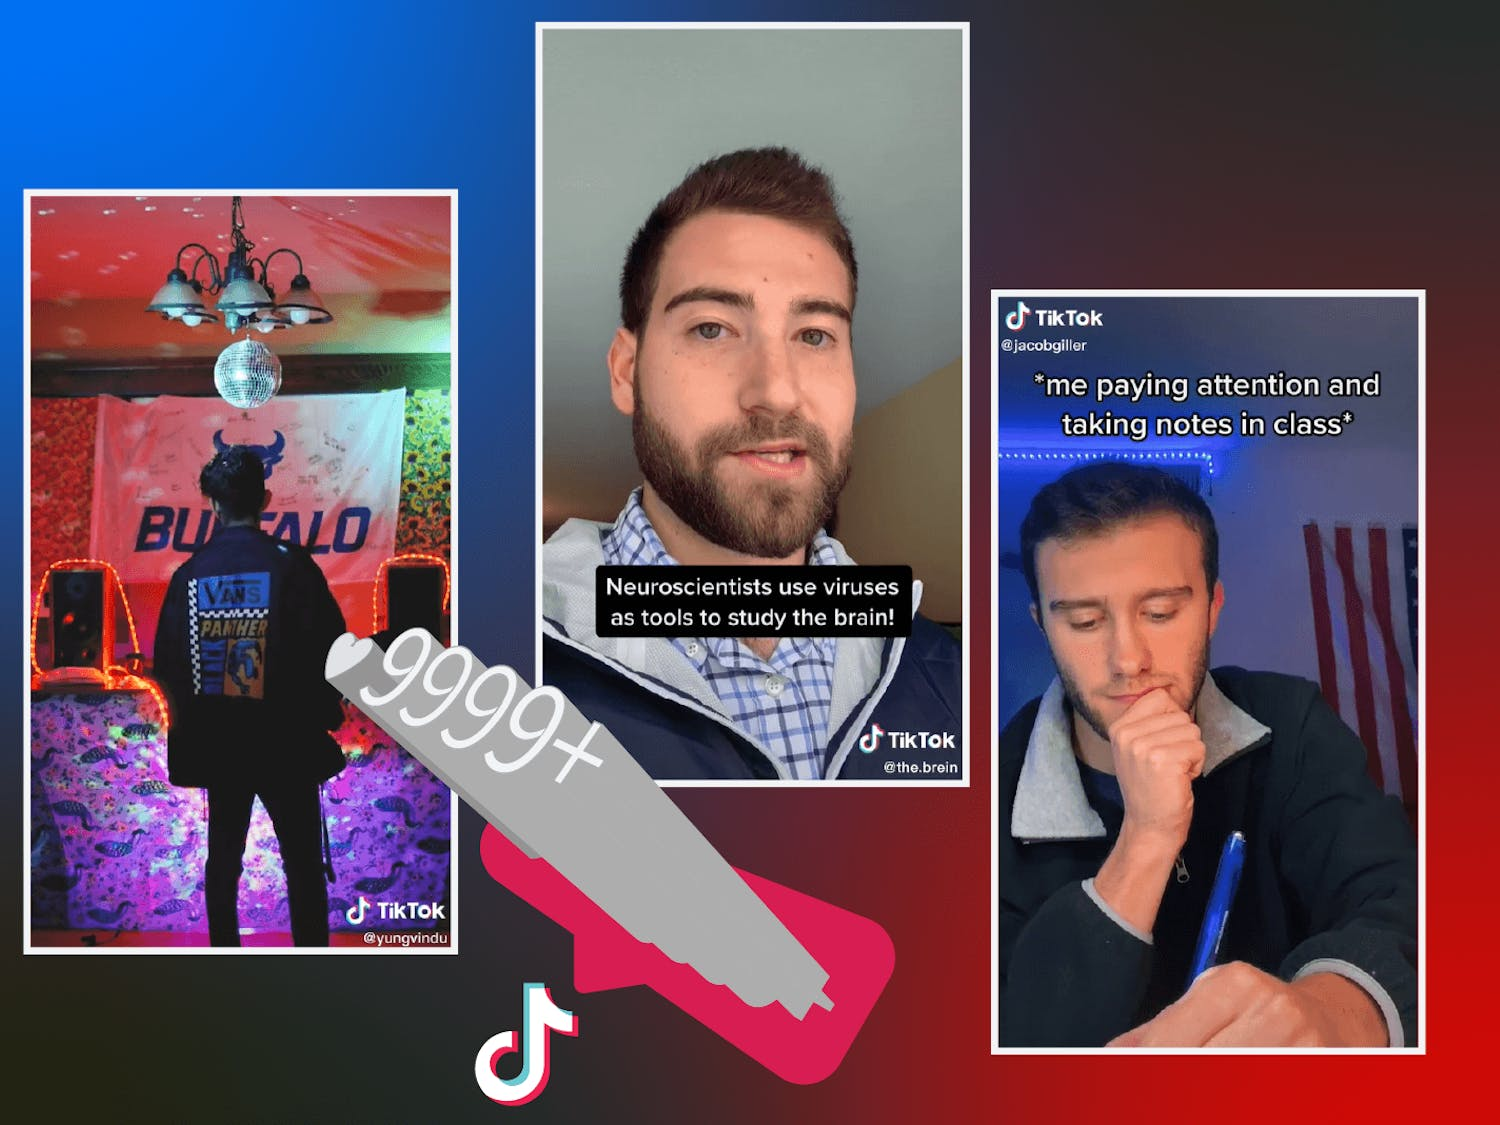 UB students have earned millions of views and likes on their TikTok videos.